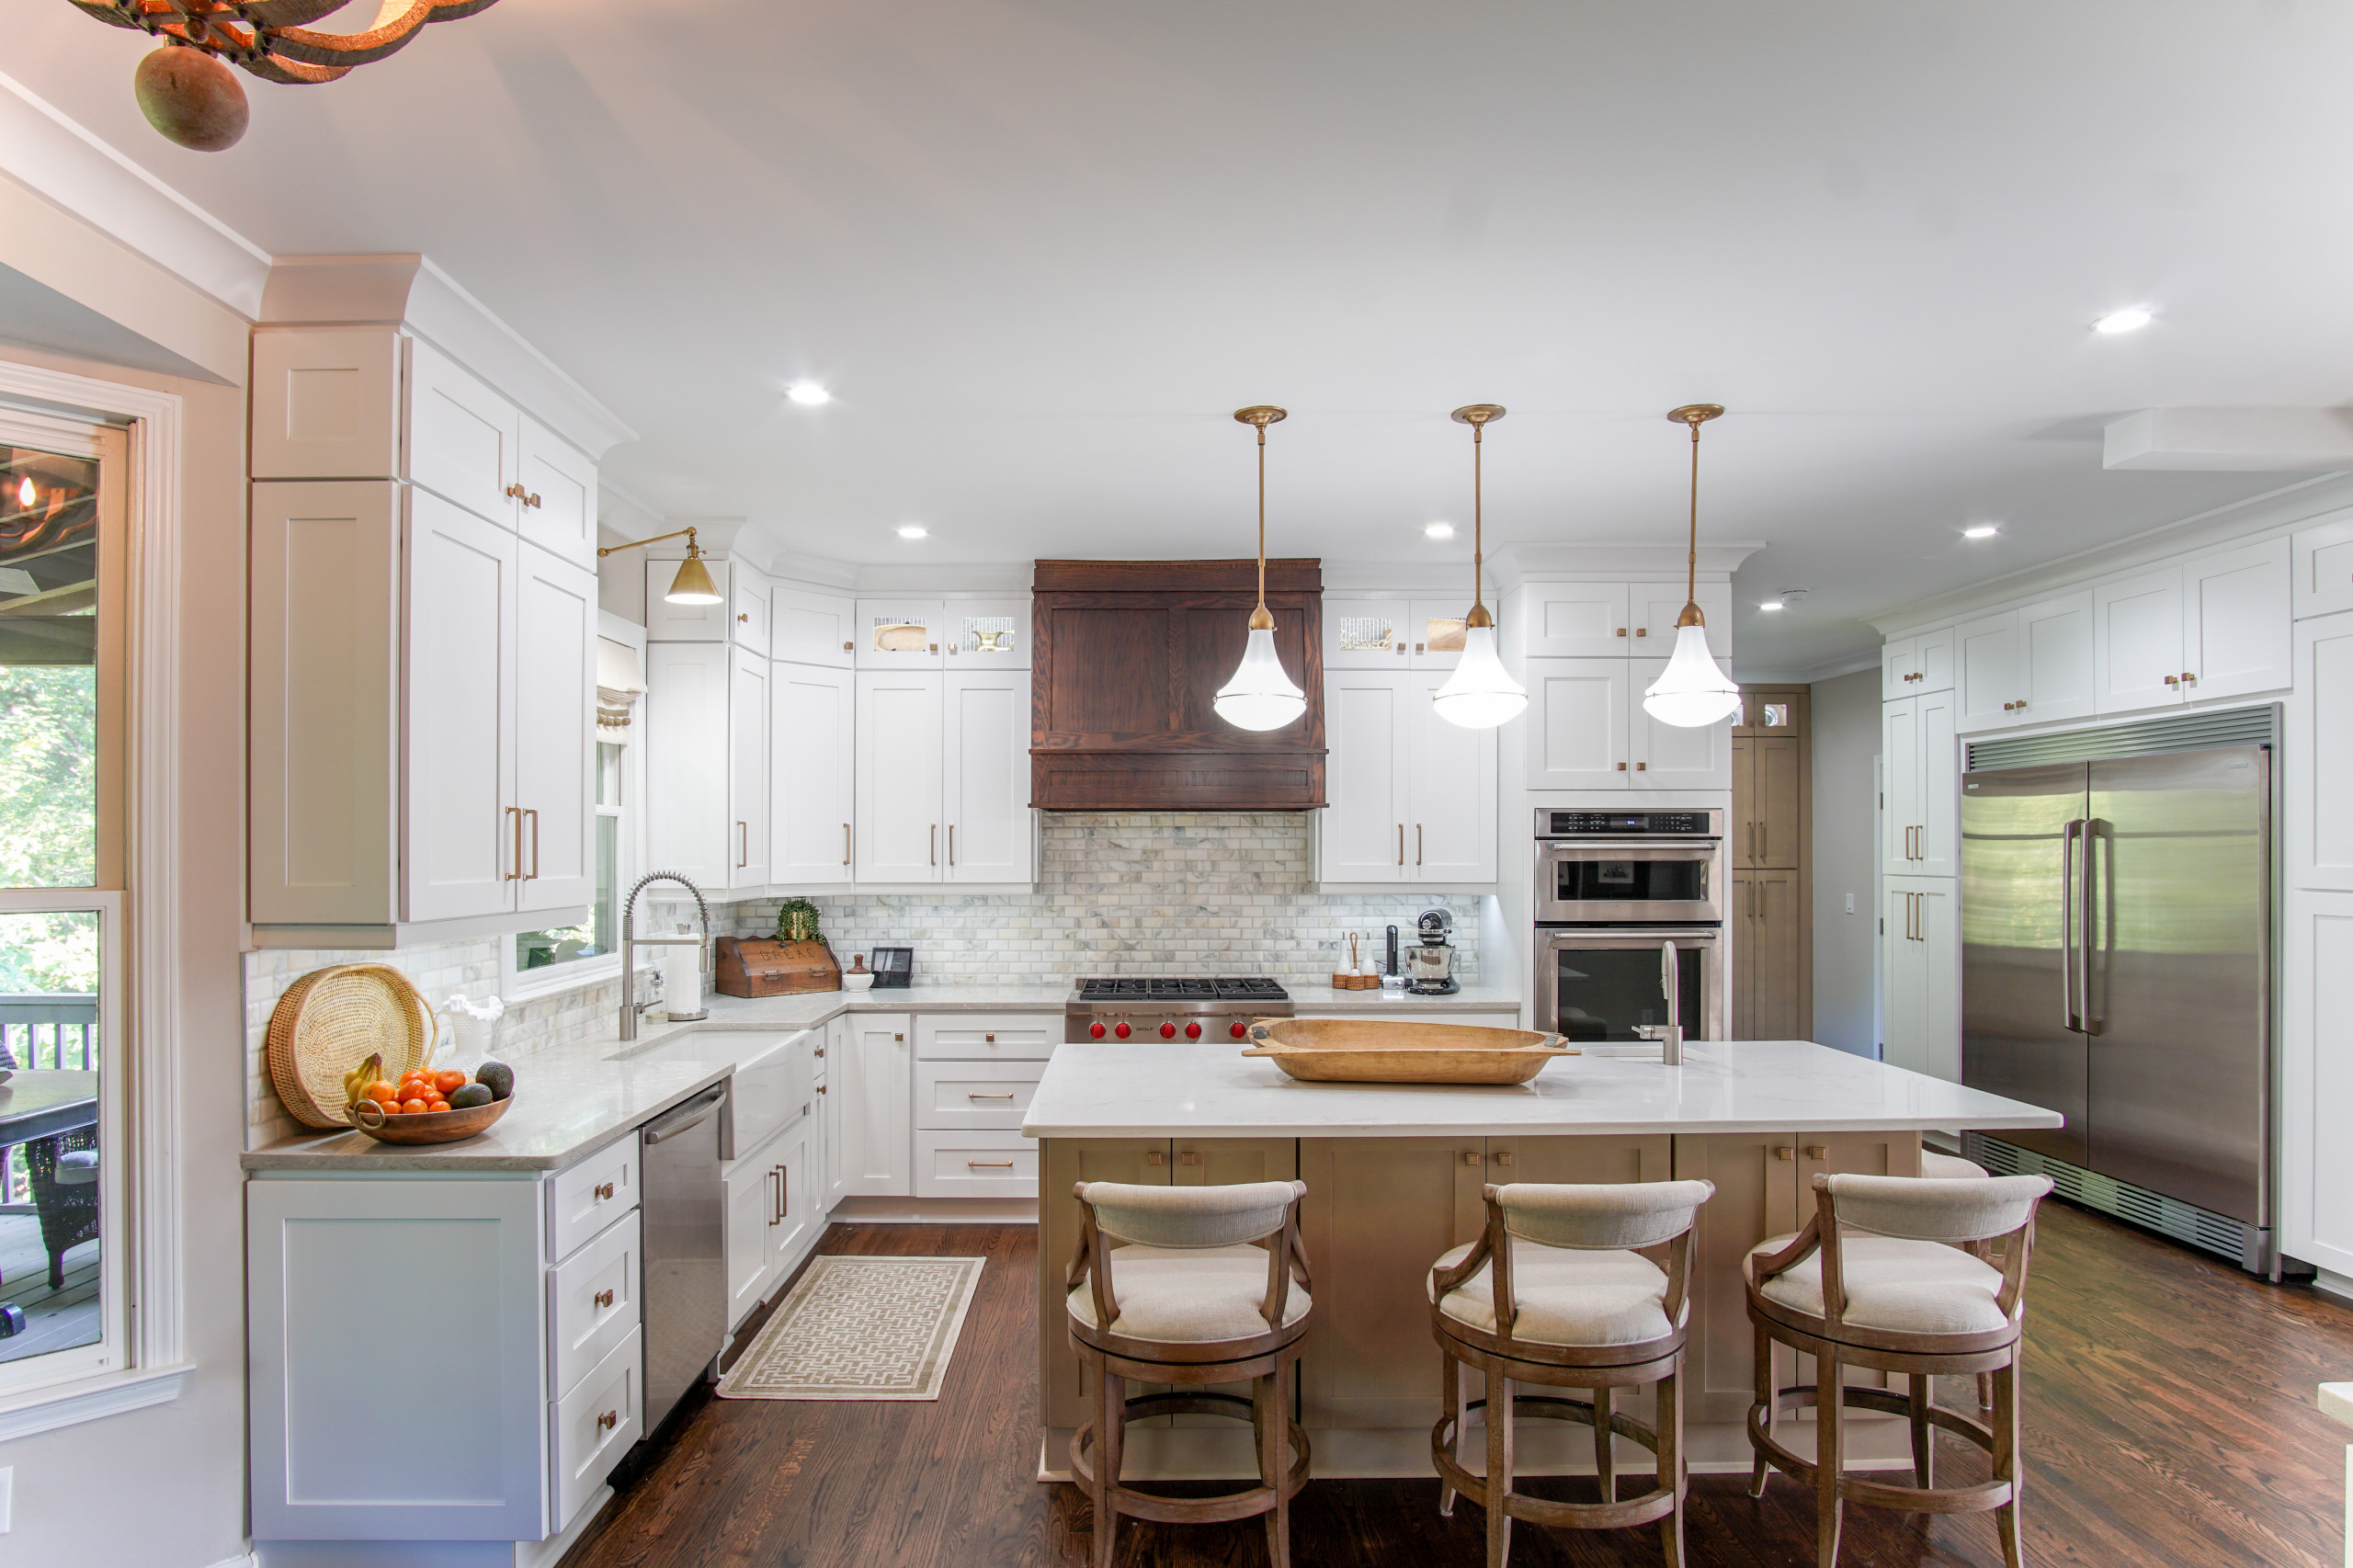 75 Beautiful Kitchen With Subway Tile Backsplash Pictures Ideas November 2020 Houzz